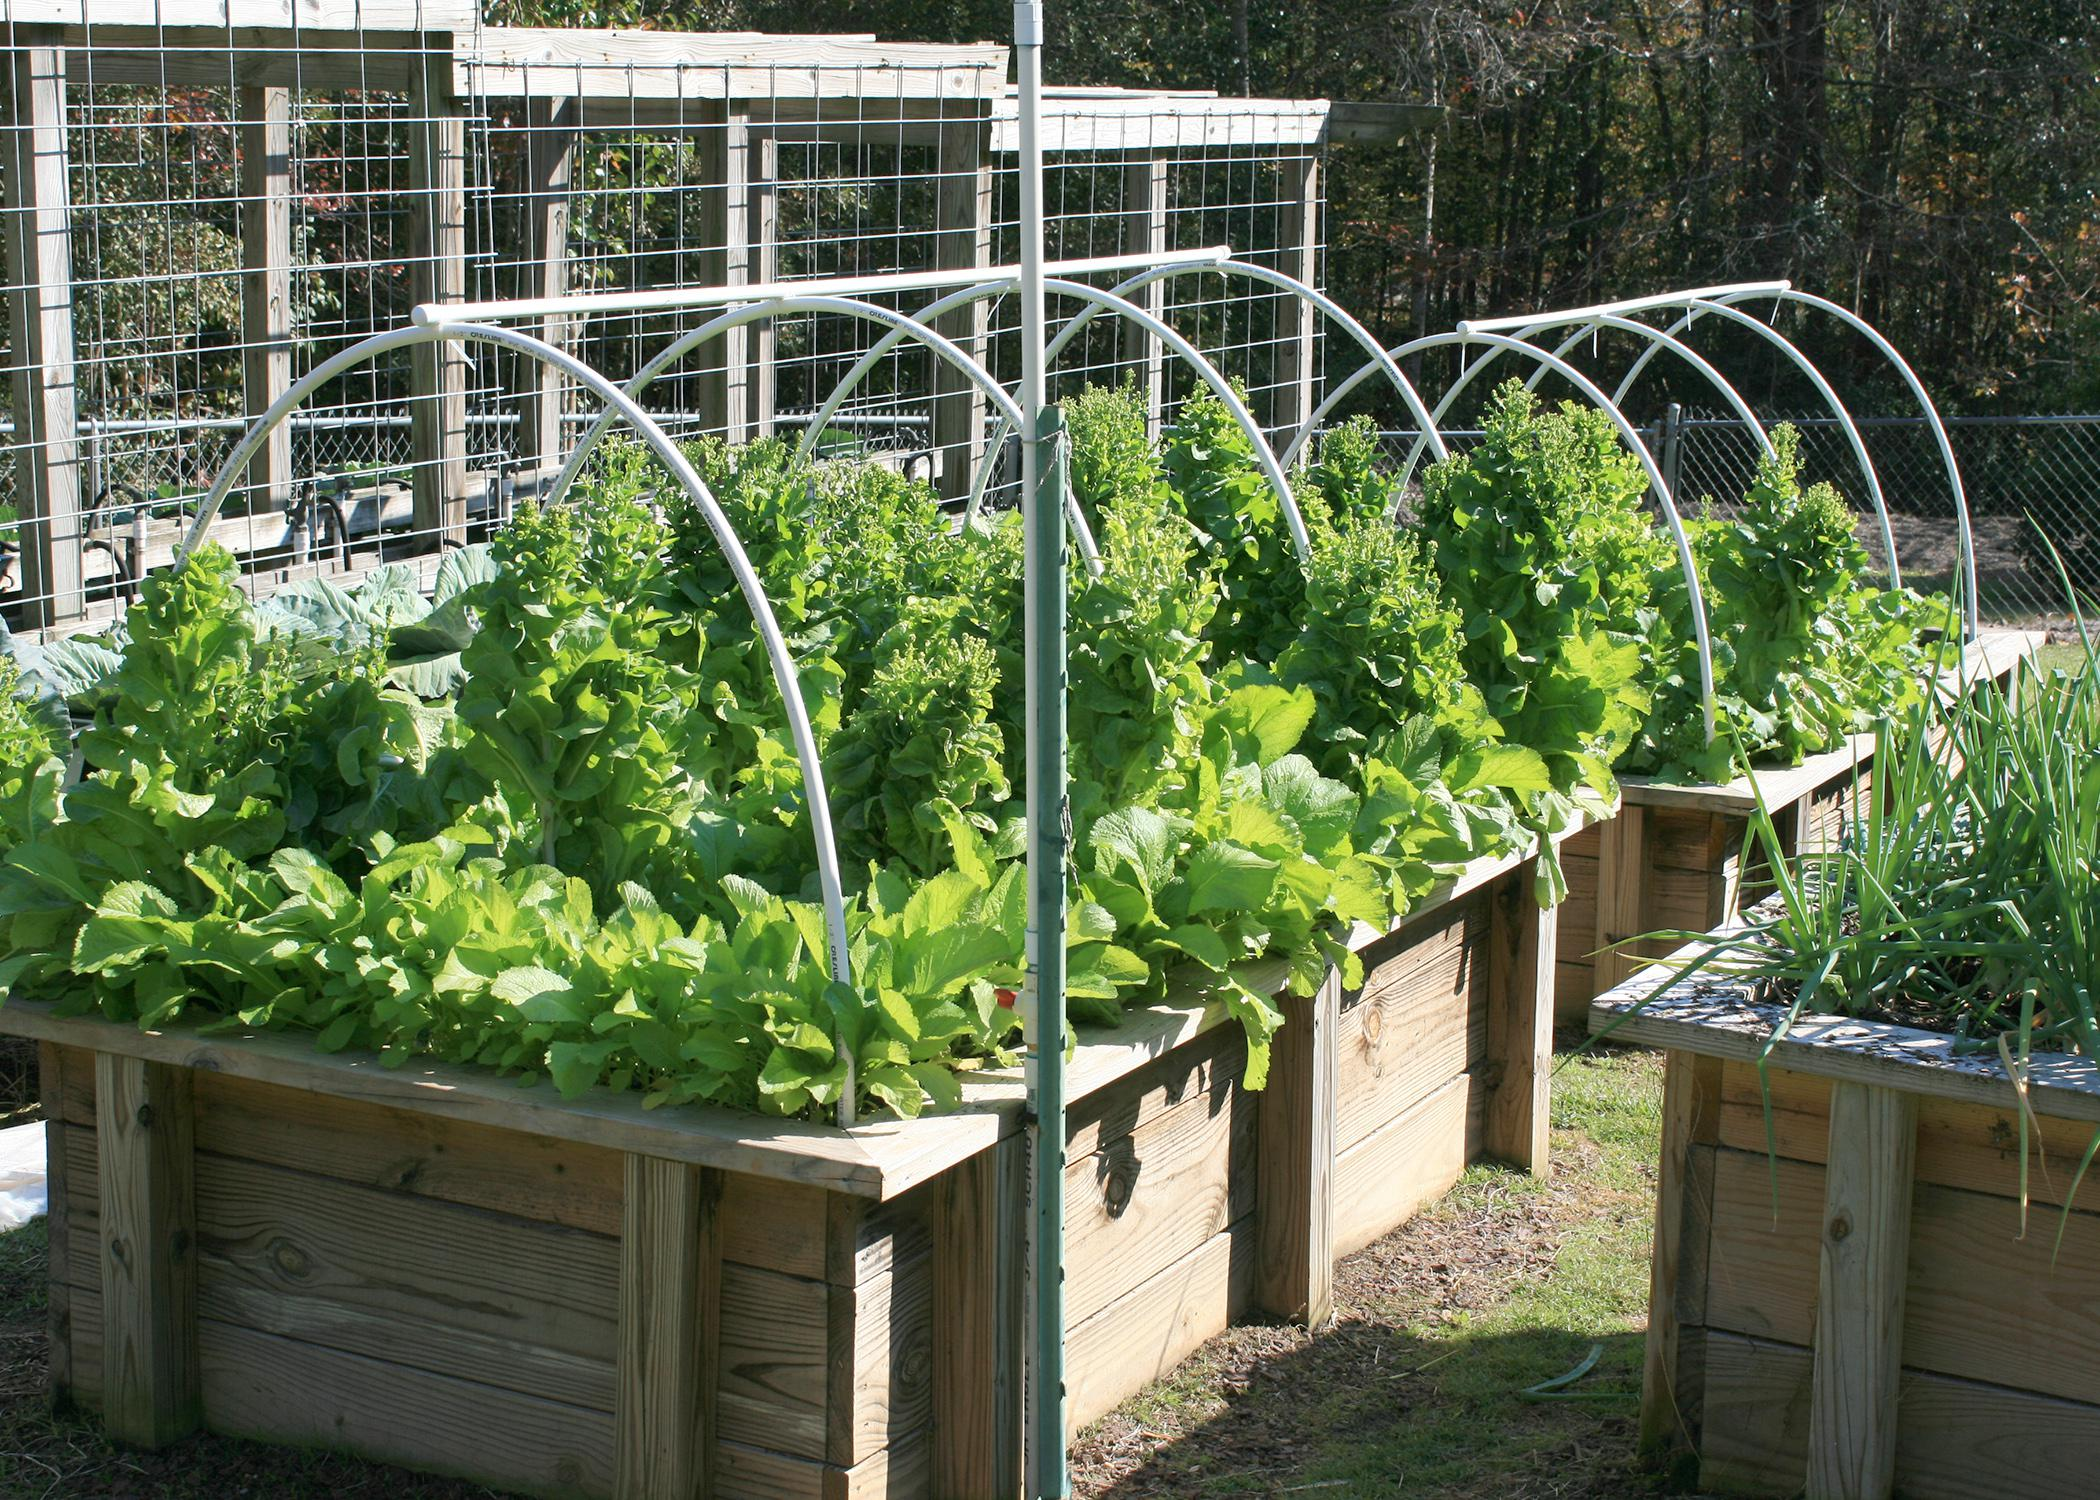 Plants grow from wooden boxes that have an overhead, curved pipe system.